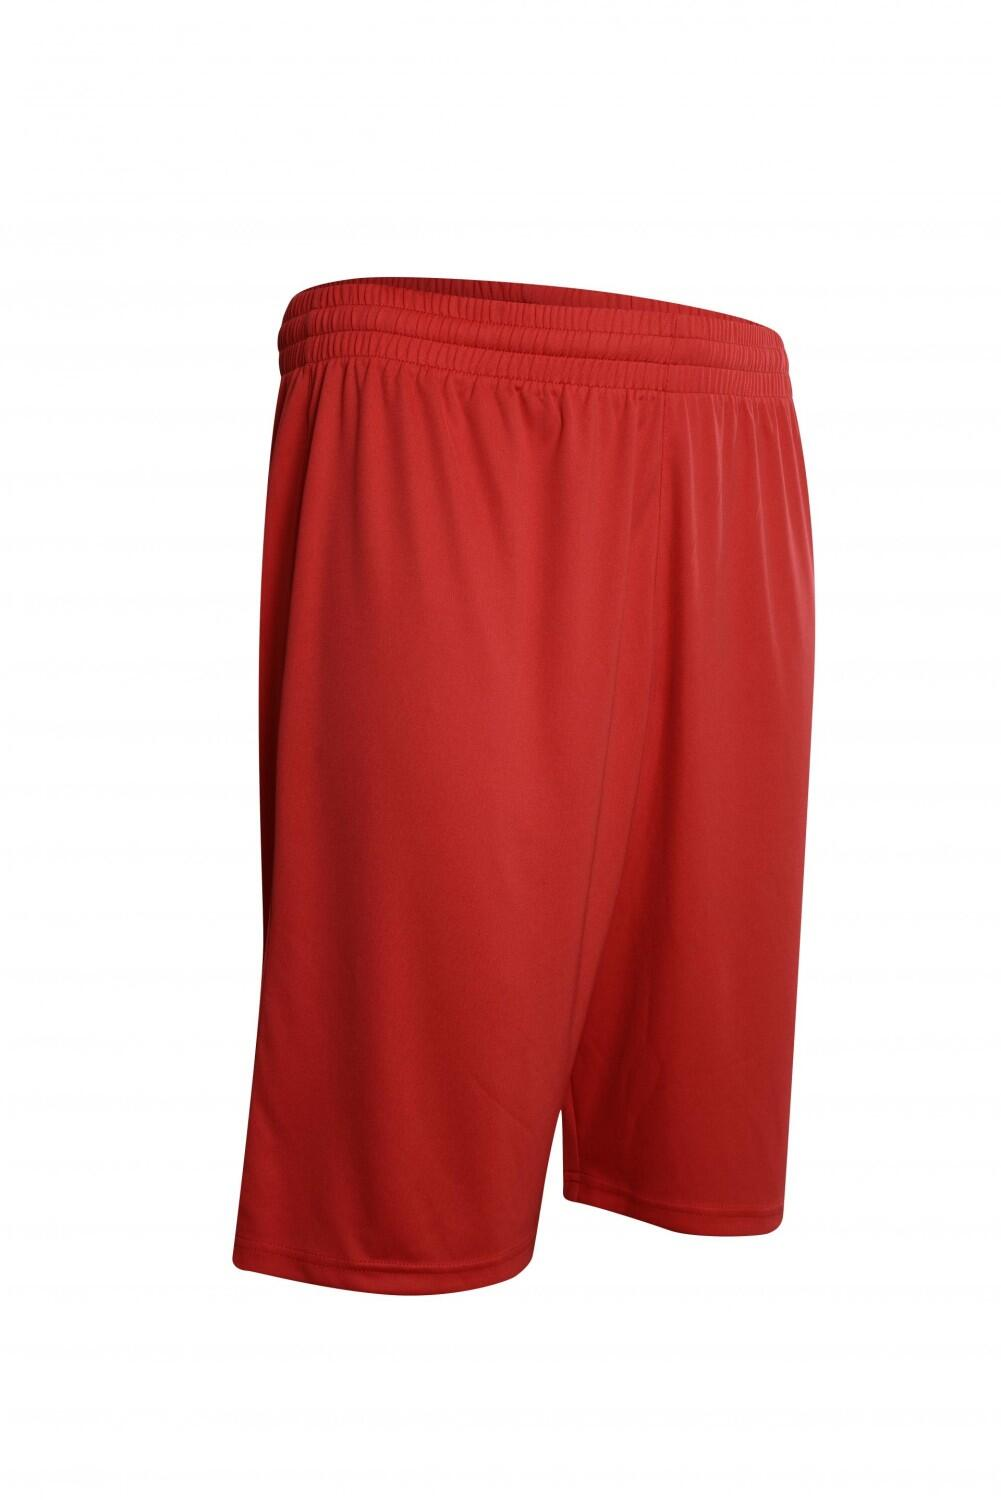 Basketball Shorts Magic  v. Acerbis , rot , 4XS-4XL